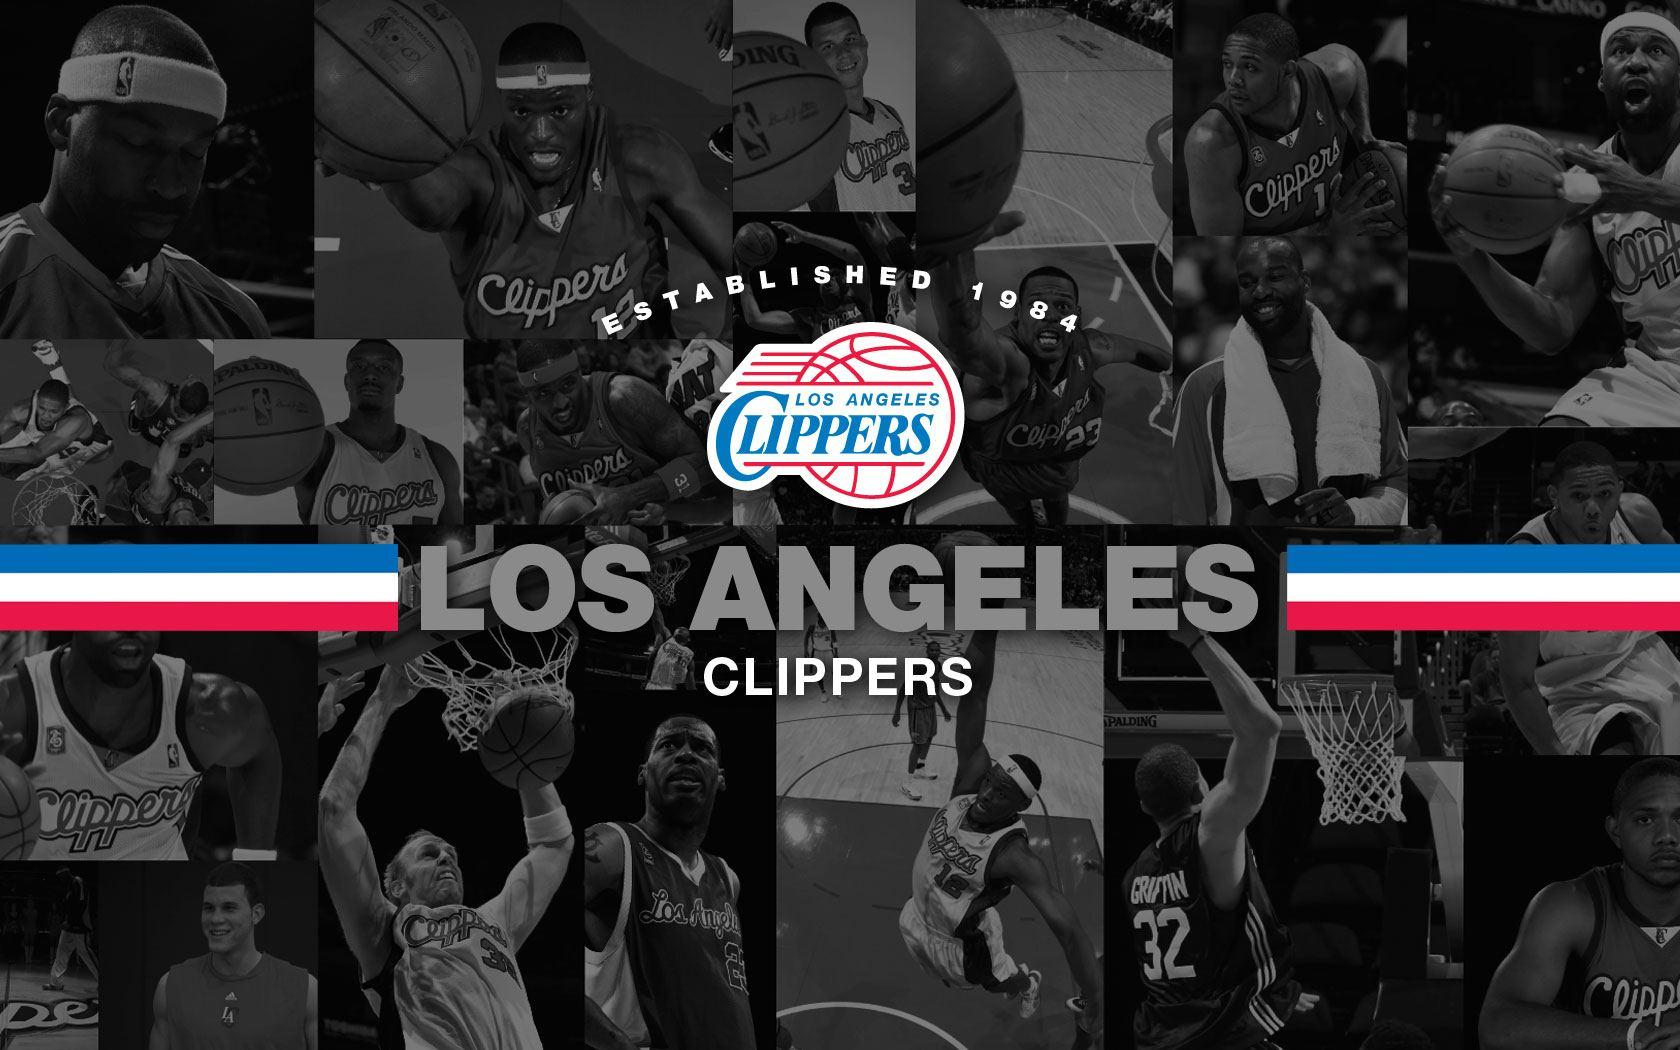 Los Angeles Clippers wallpapers hd free download